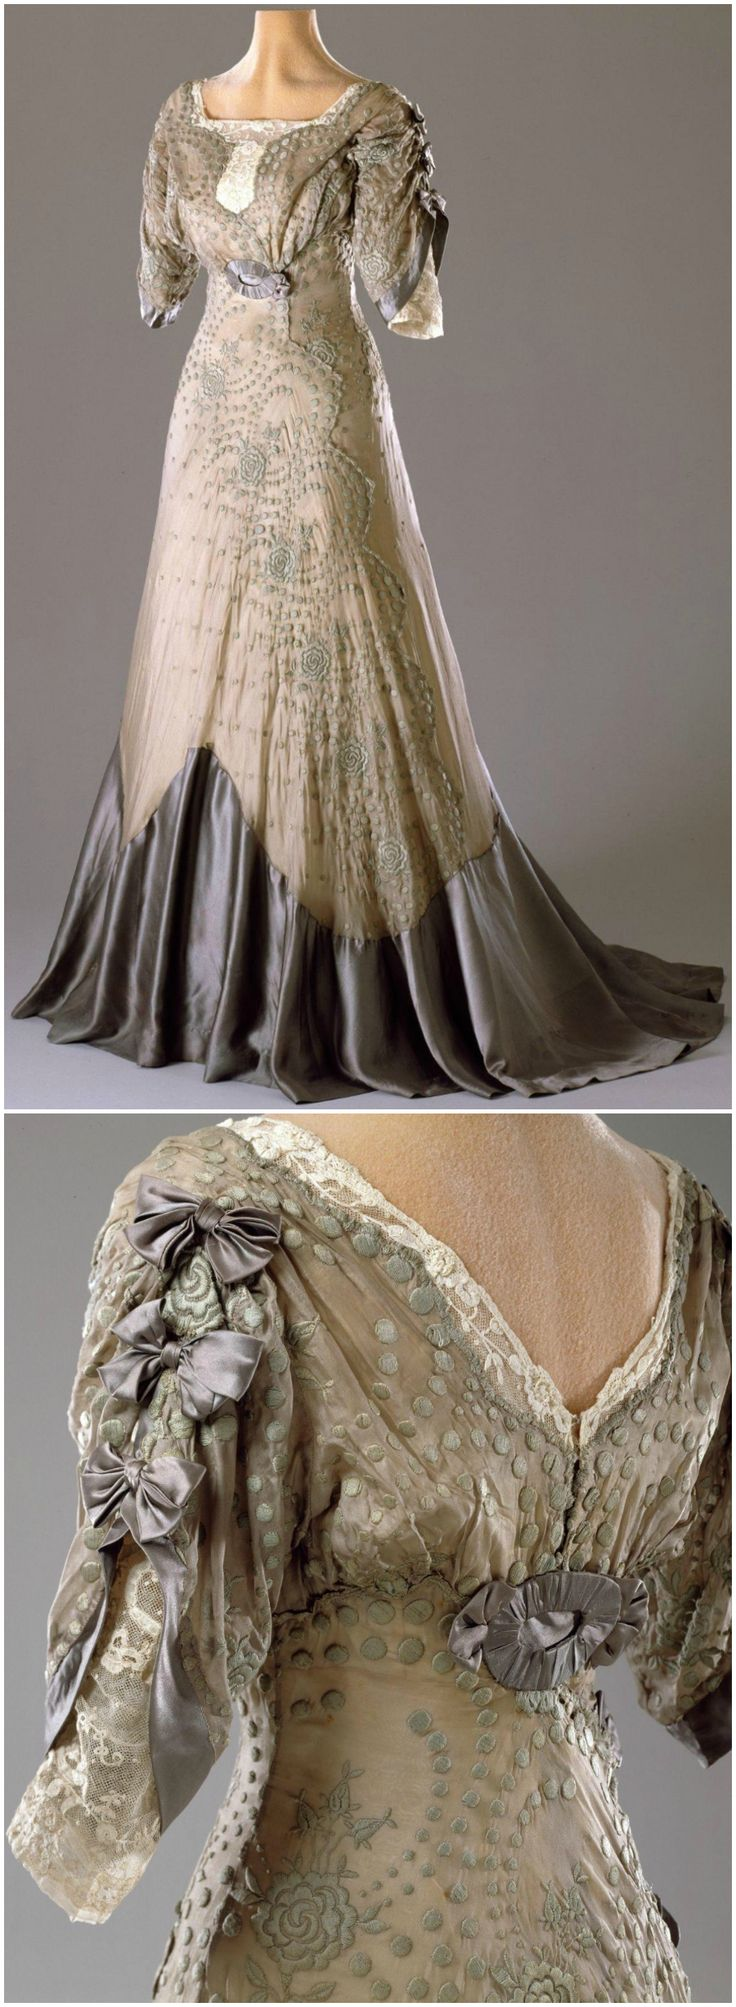 "Evening dress, 1909-11, Hillwood Estate, Museum & Gardens. Belonged to Marjorie Merriweather Post. This garment represents a typical late Edwardian party dress with a high waist and fitted upper body placed on a boned bodice. Other typical features are the short, ""tulip"" shaped sleeves and square neckline. The under-base of the skirt is yellow silk taffeta with an over-layer of grey silk organza embroidered with flowers in green cotton thread. The dress has a formal evening train."